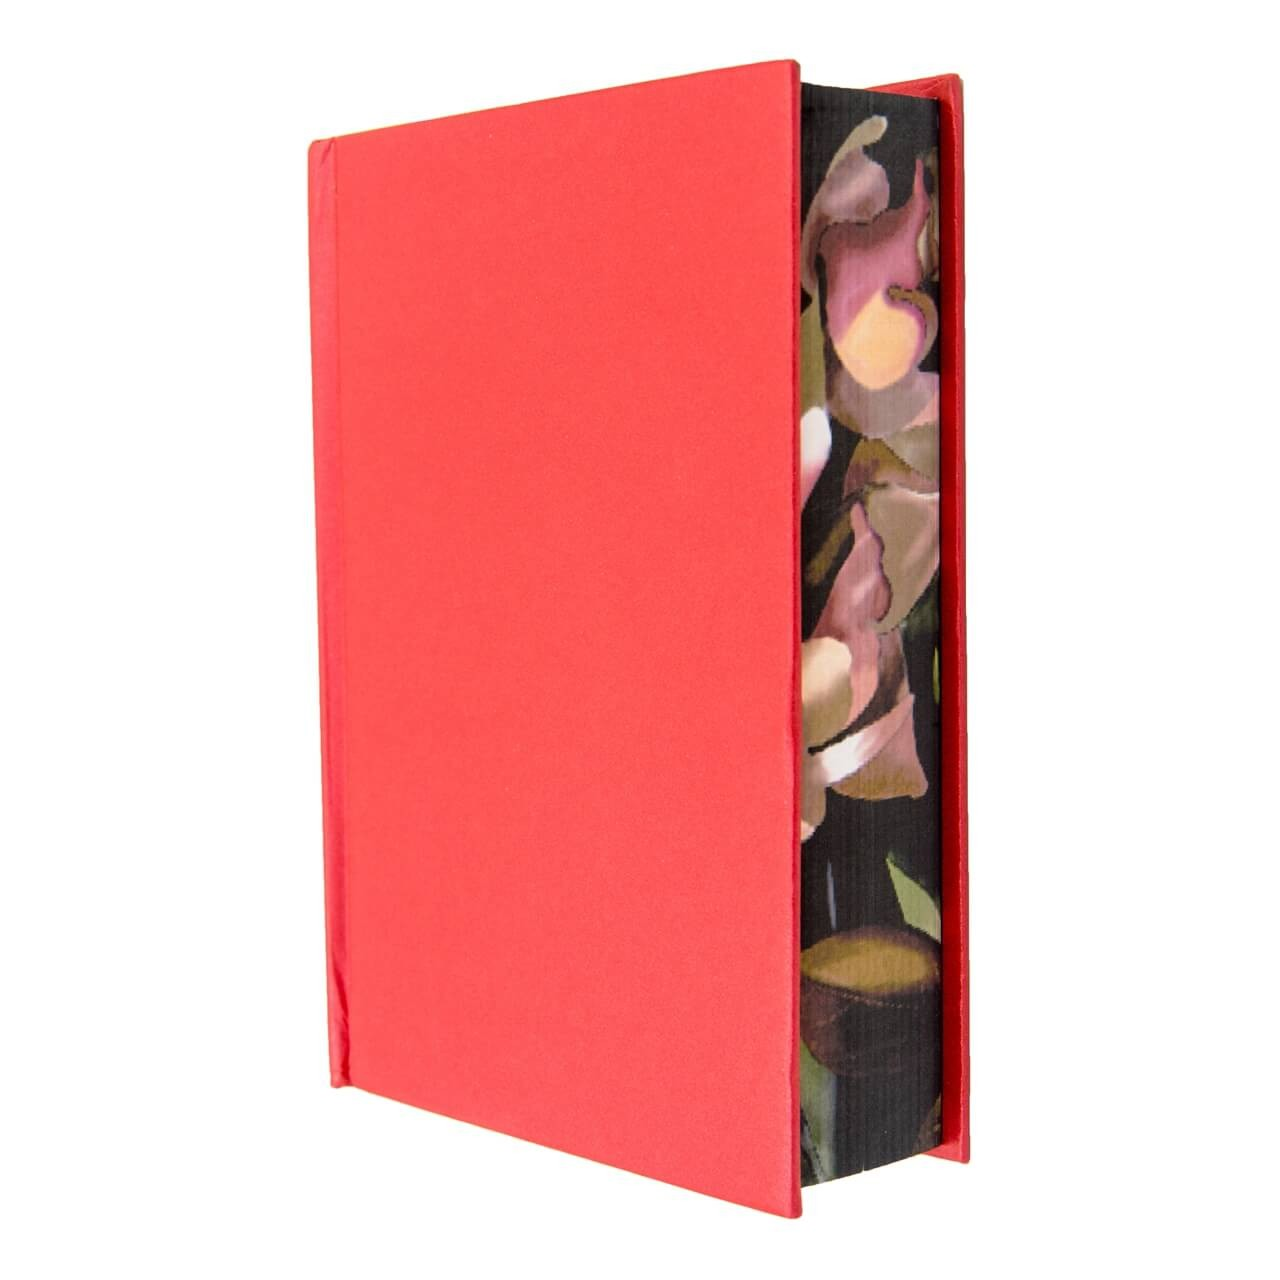 Very Thick Blank Journal Small Size A6 Floral Surrounded